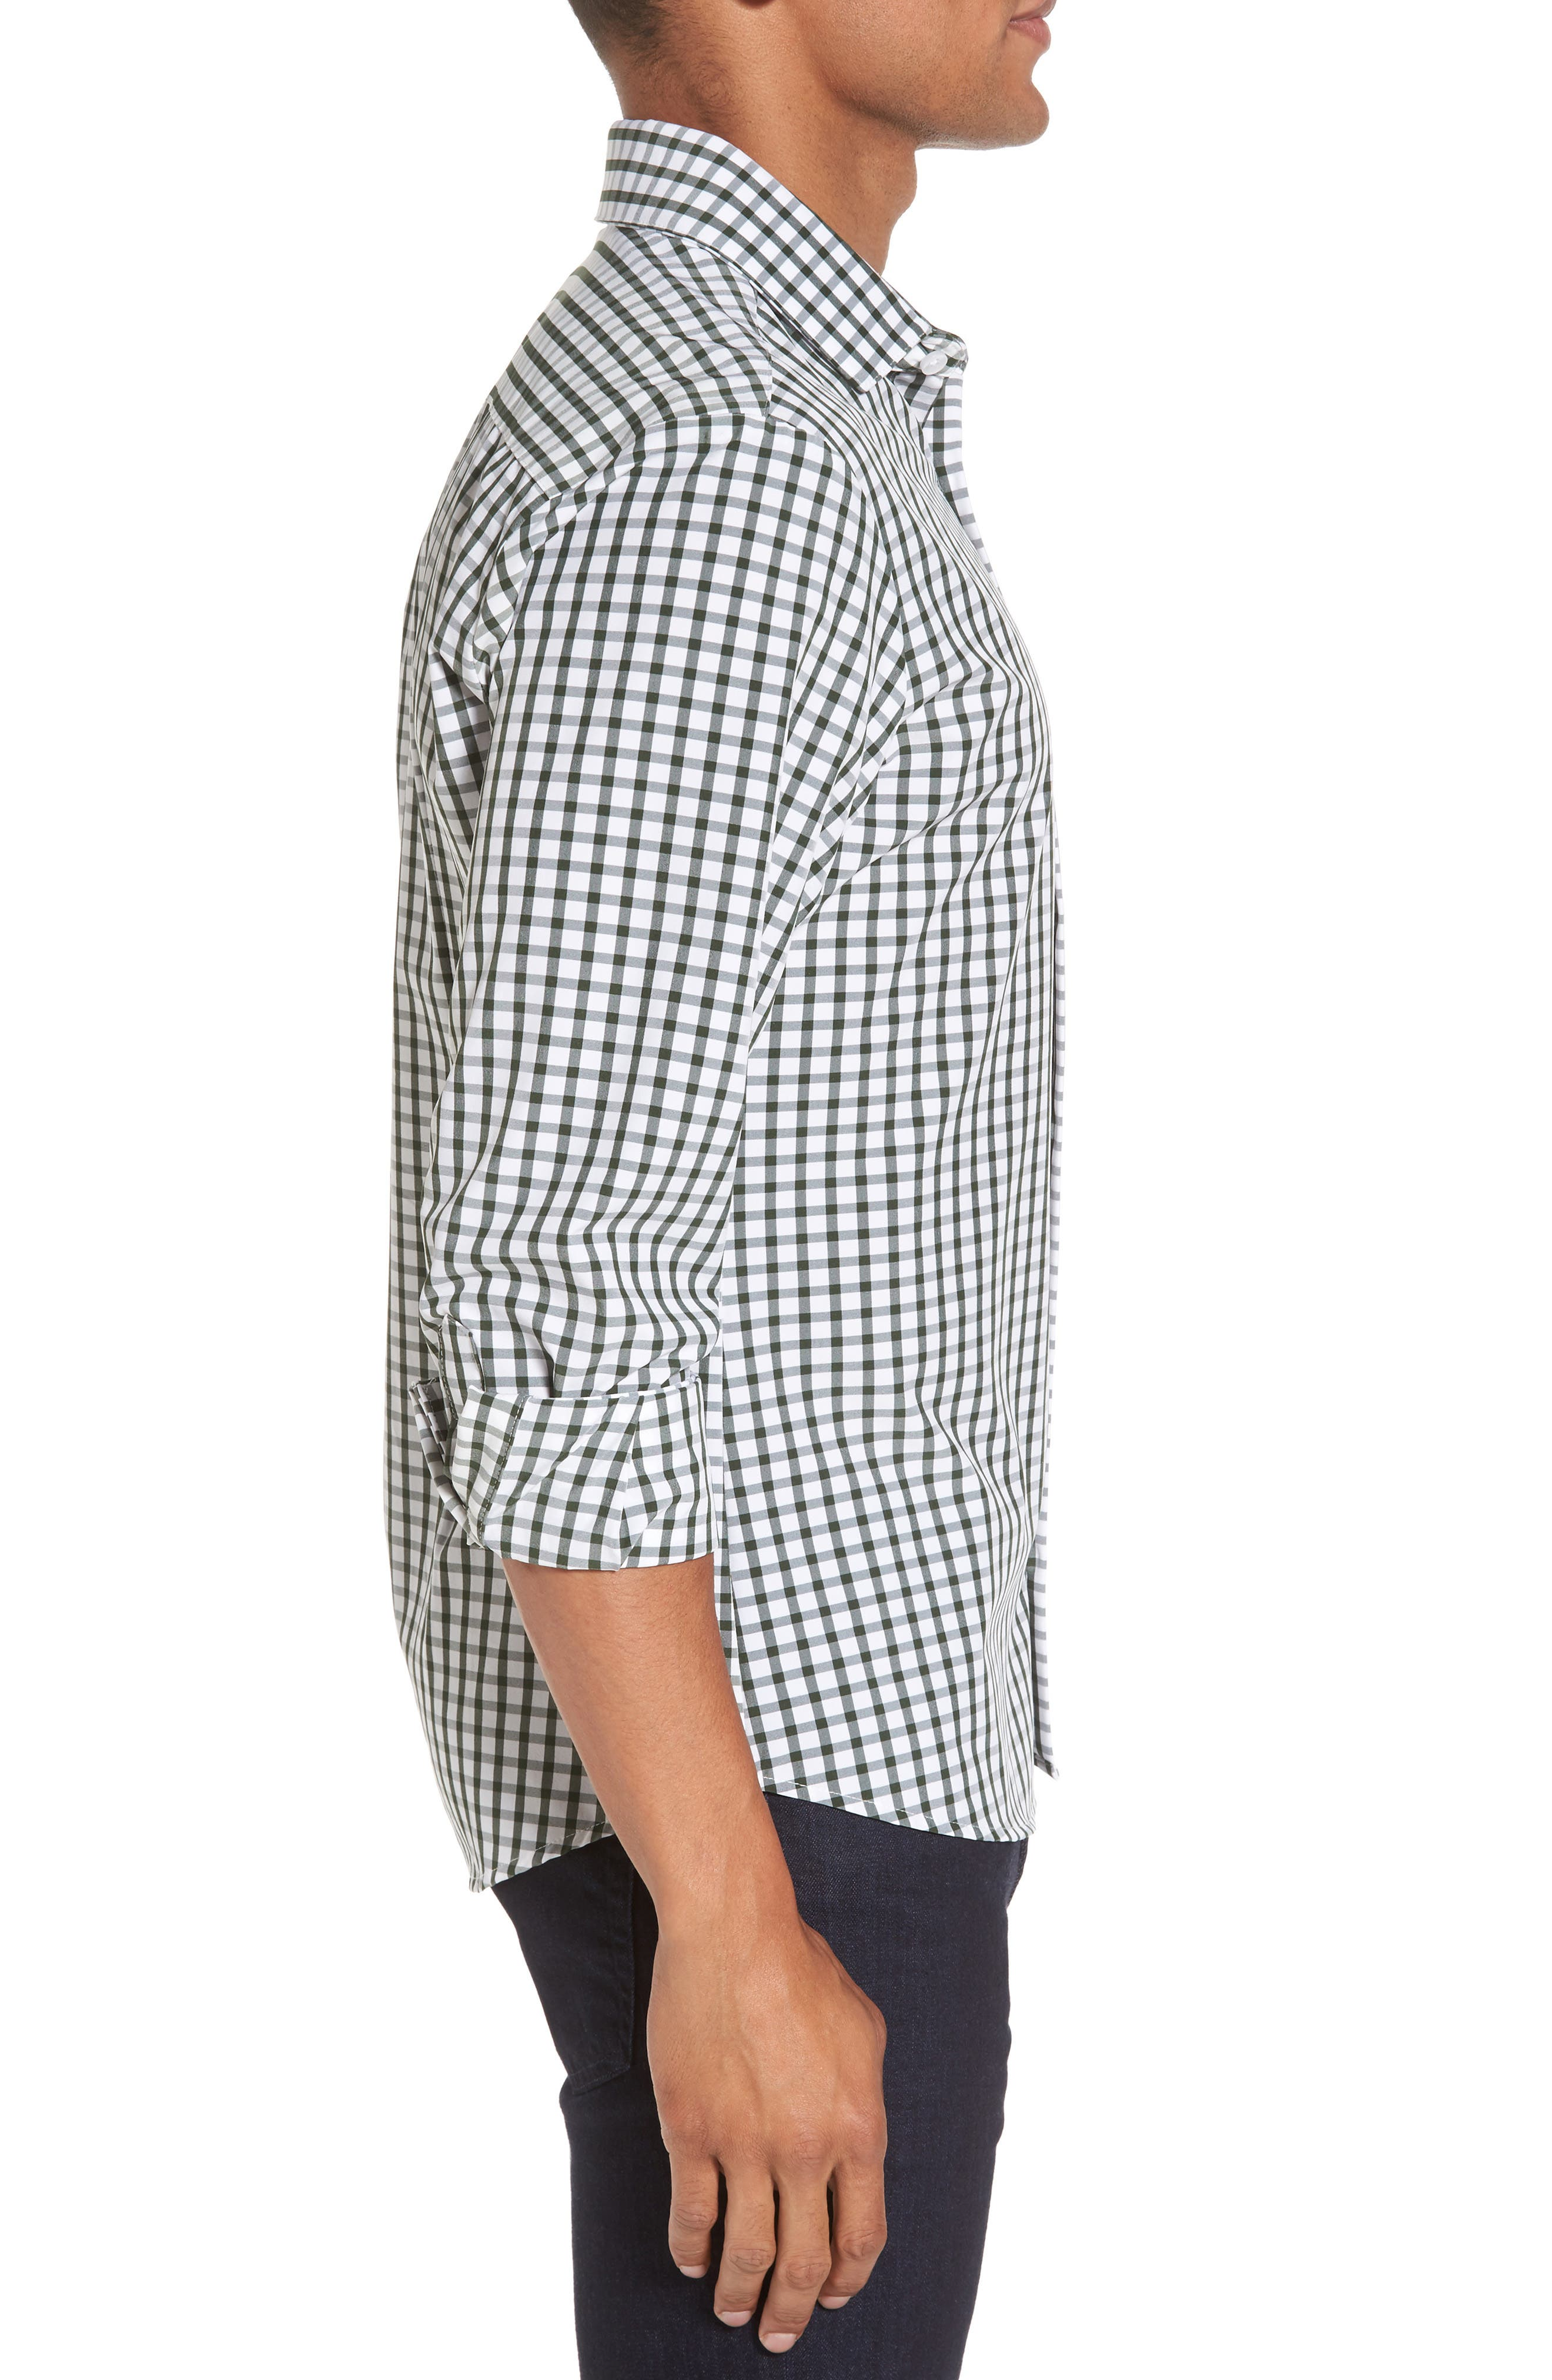 Turner Green Gingham Sport Shirt,                             Alternate thumbnail 4, color,                             Green